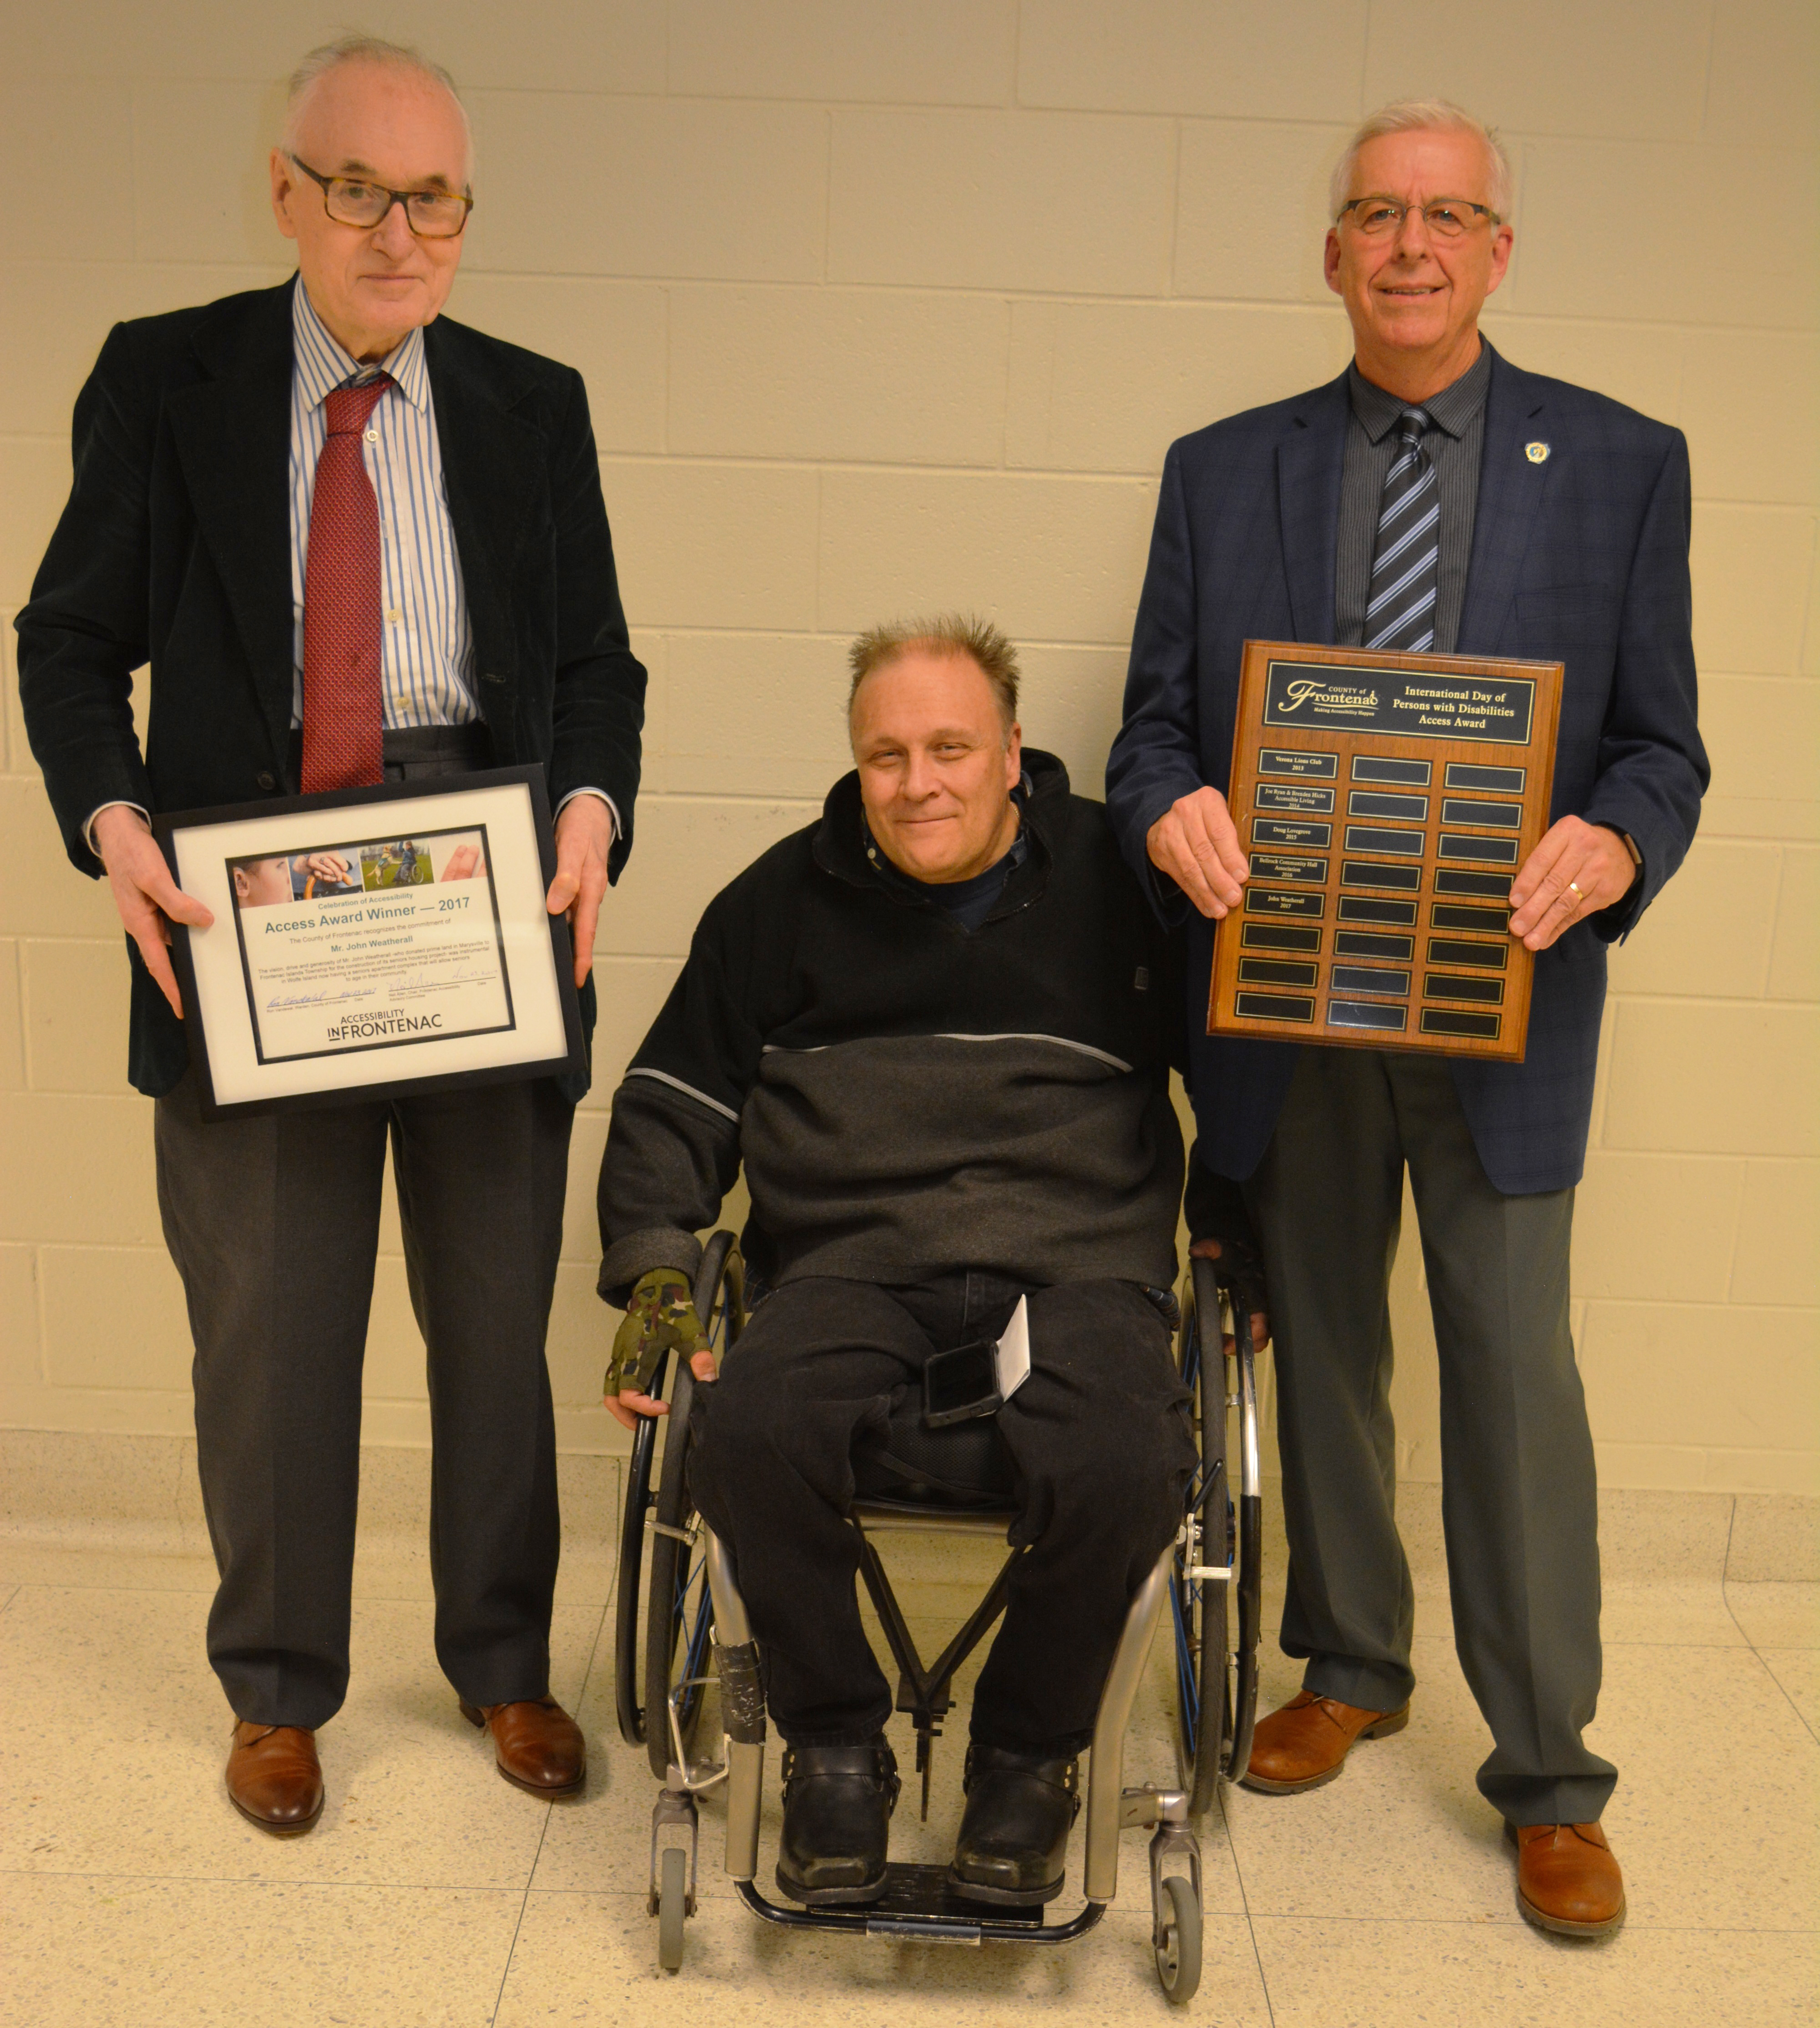 Mr. John Weatherall receives Frontenac County 2017 Access Award